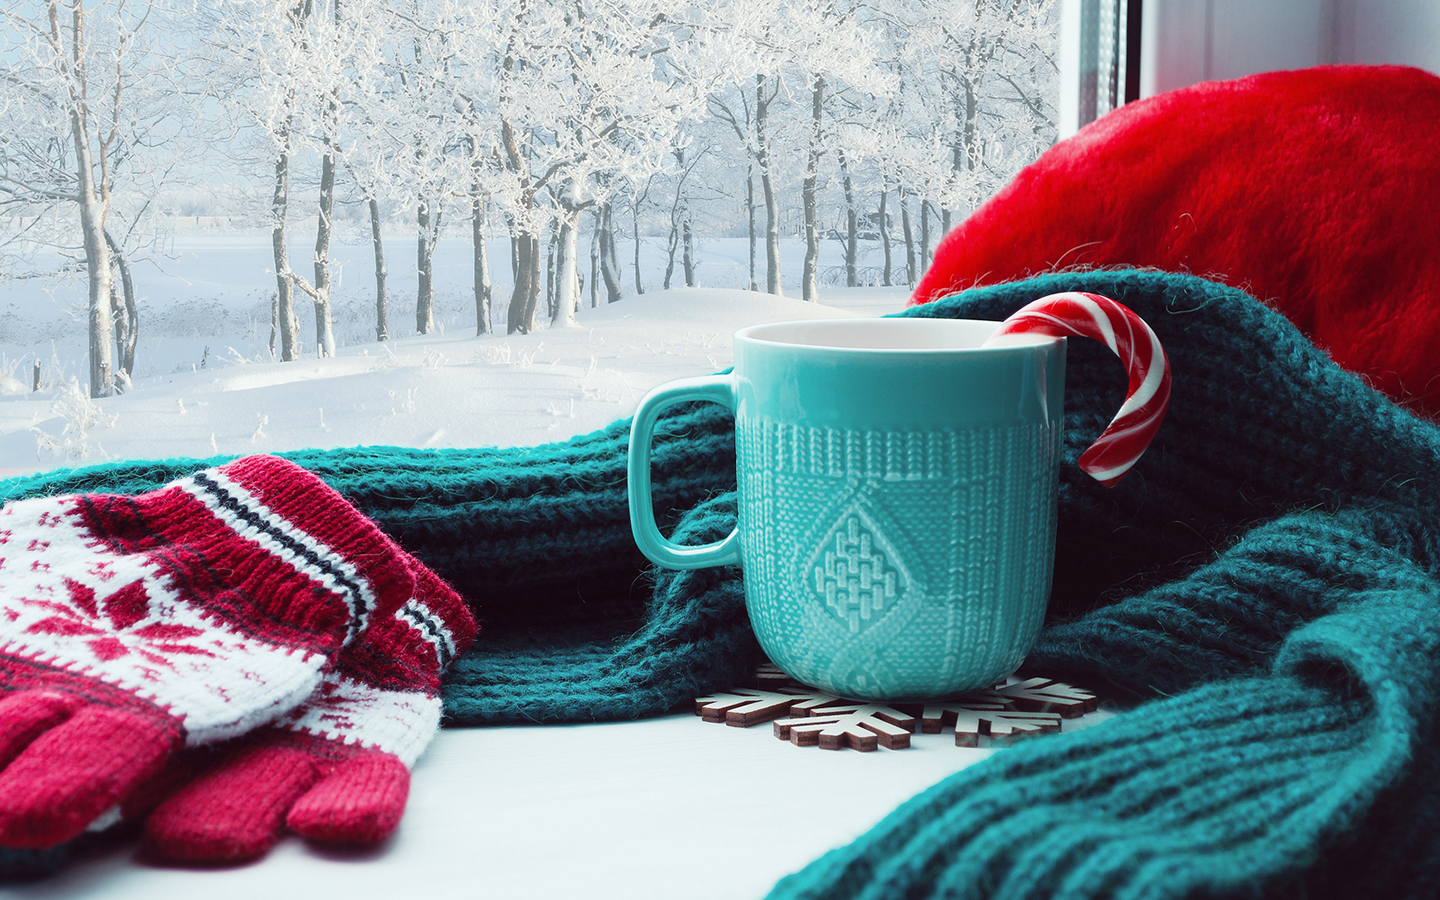 A mug with a candy cane hanging out of it sits nestled in a scarf by gloves next to a window showing a snowy forest